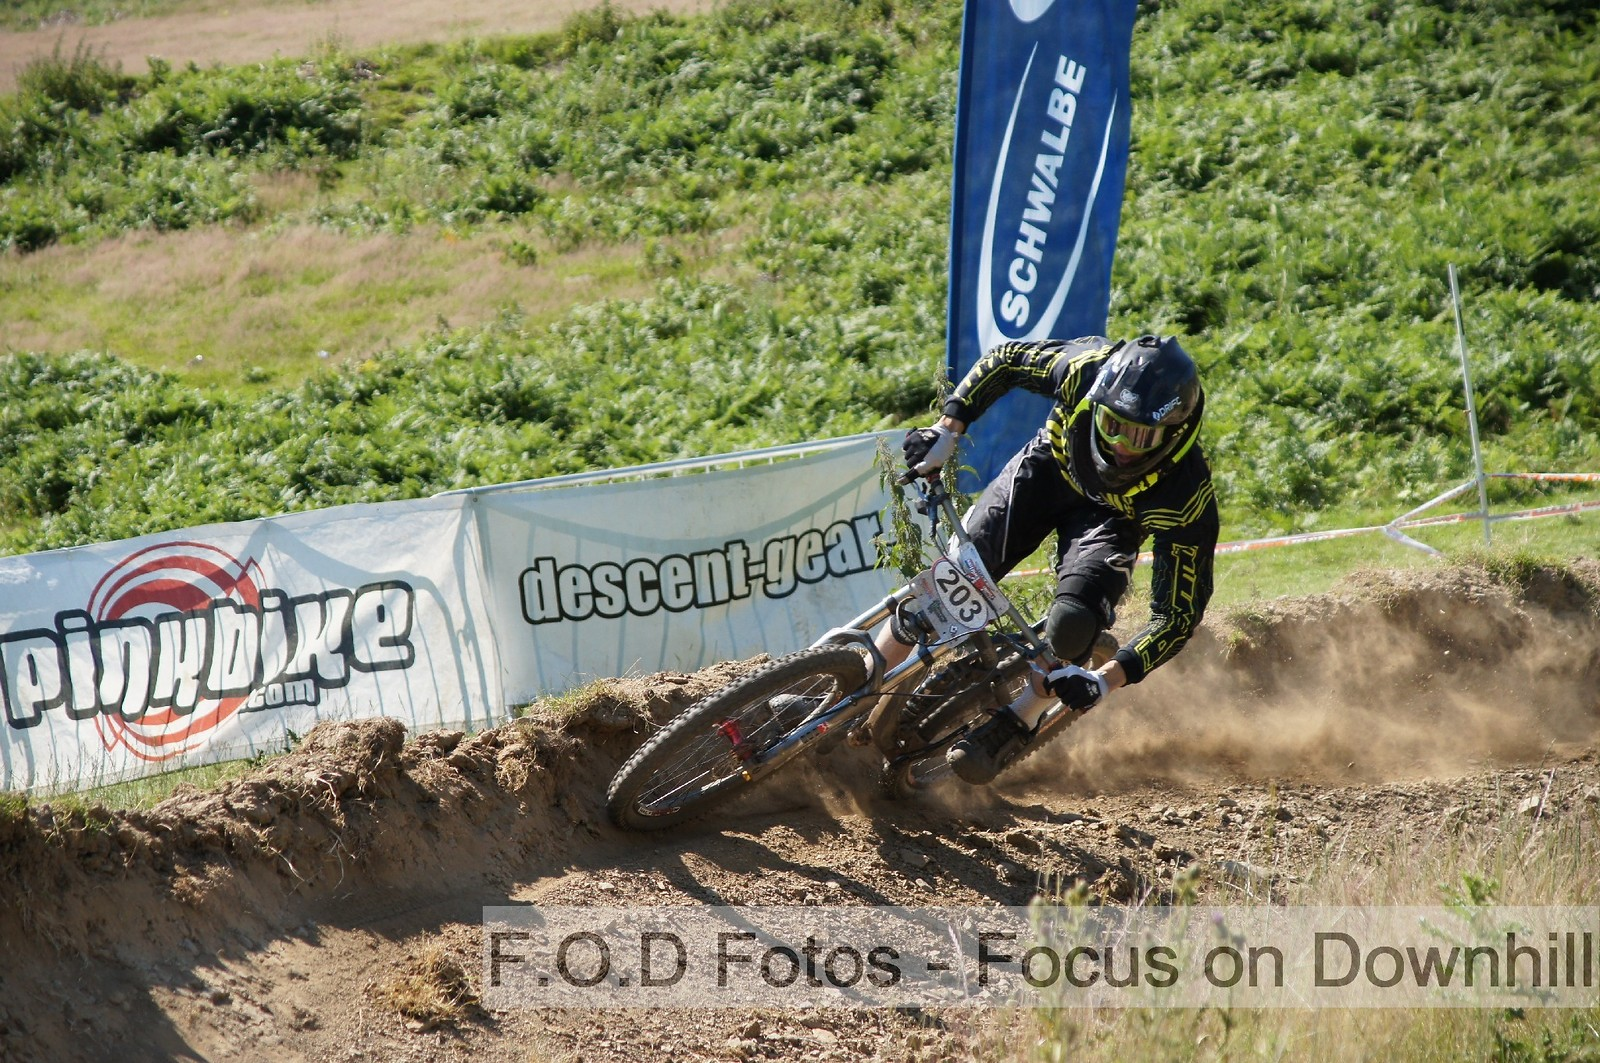 Tom Knight National Champs 2012 - Fodfotos - Mountain Biking Pictures - Vital MTB